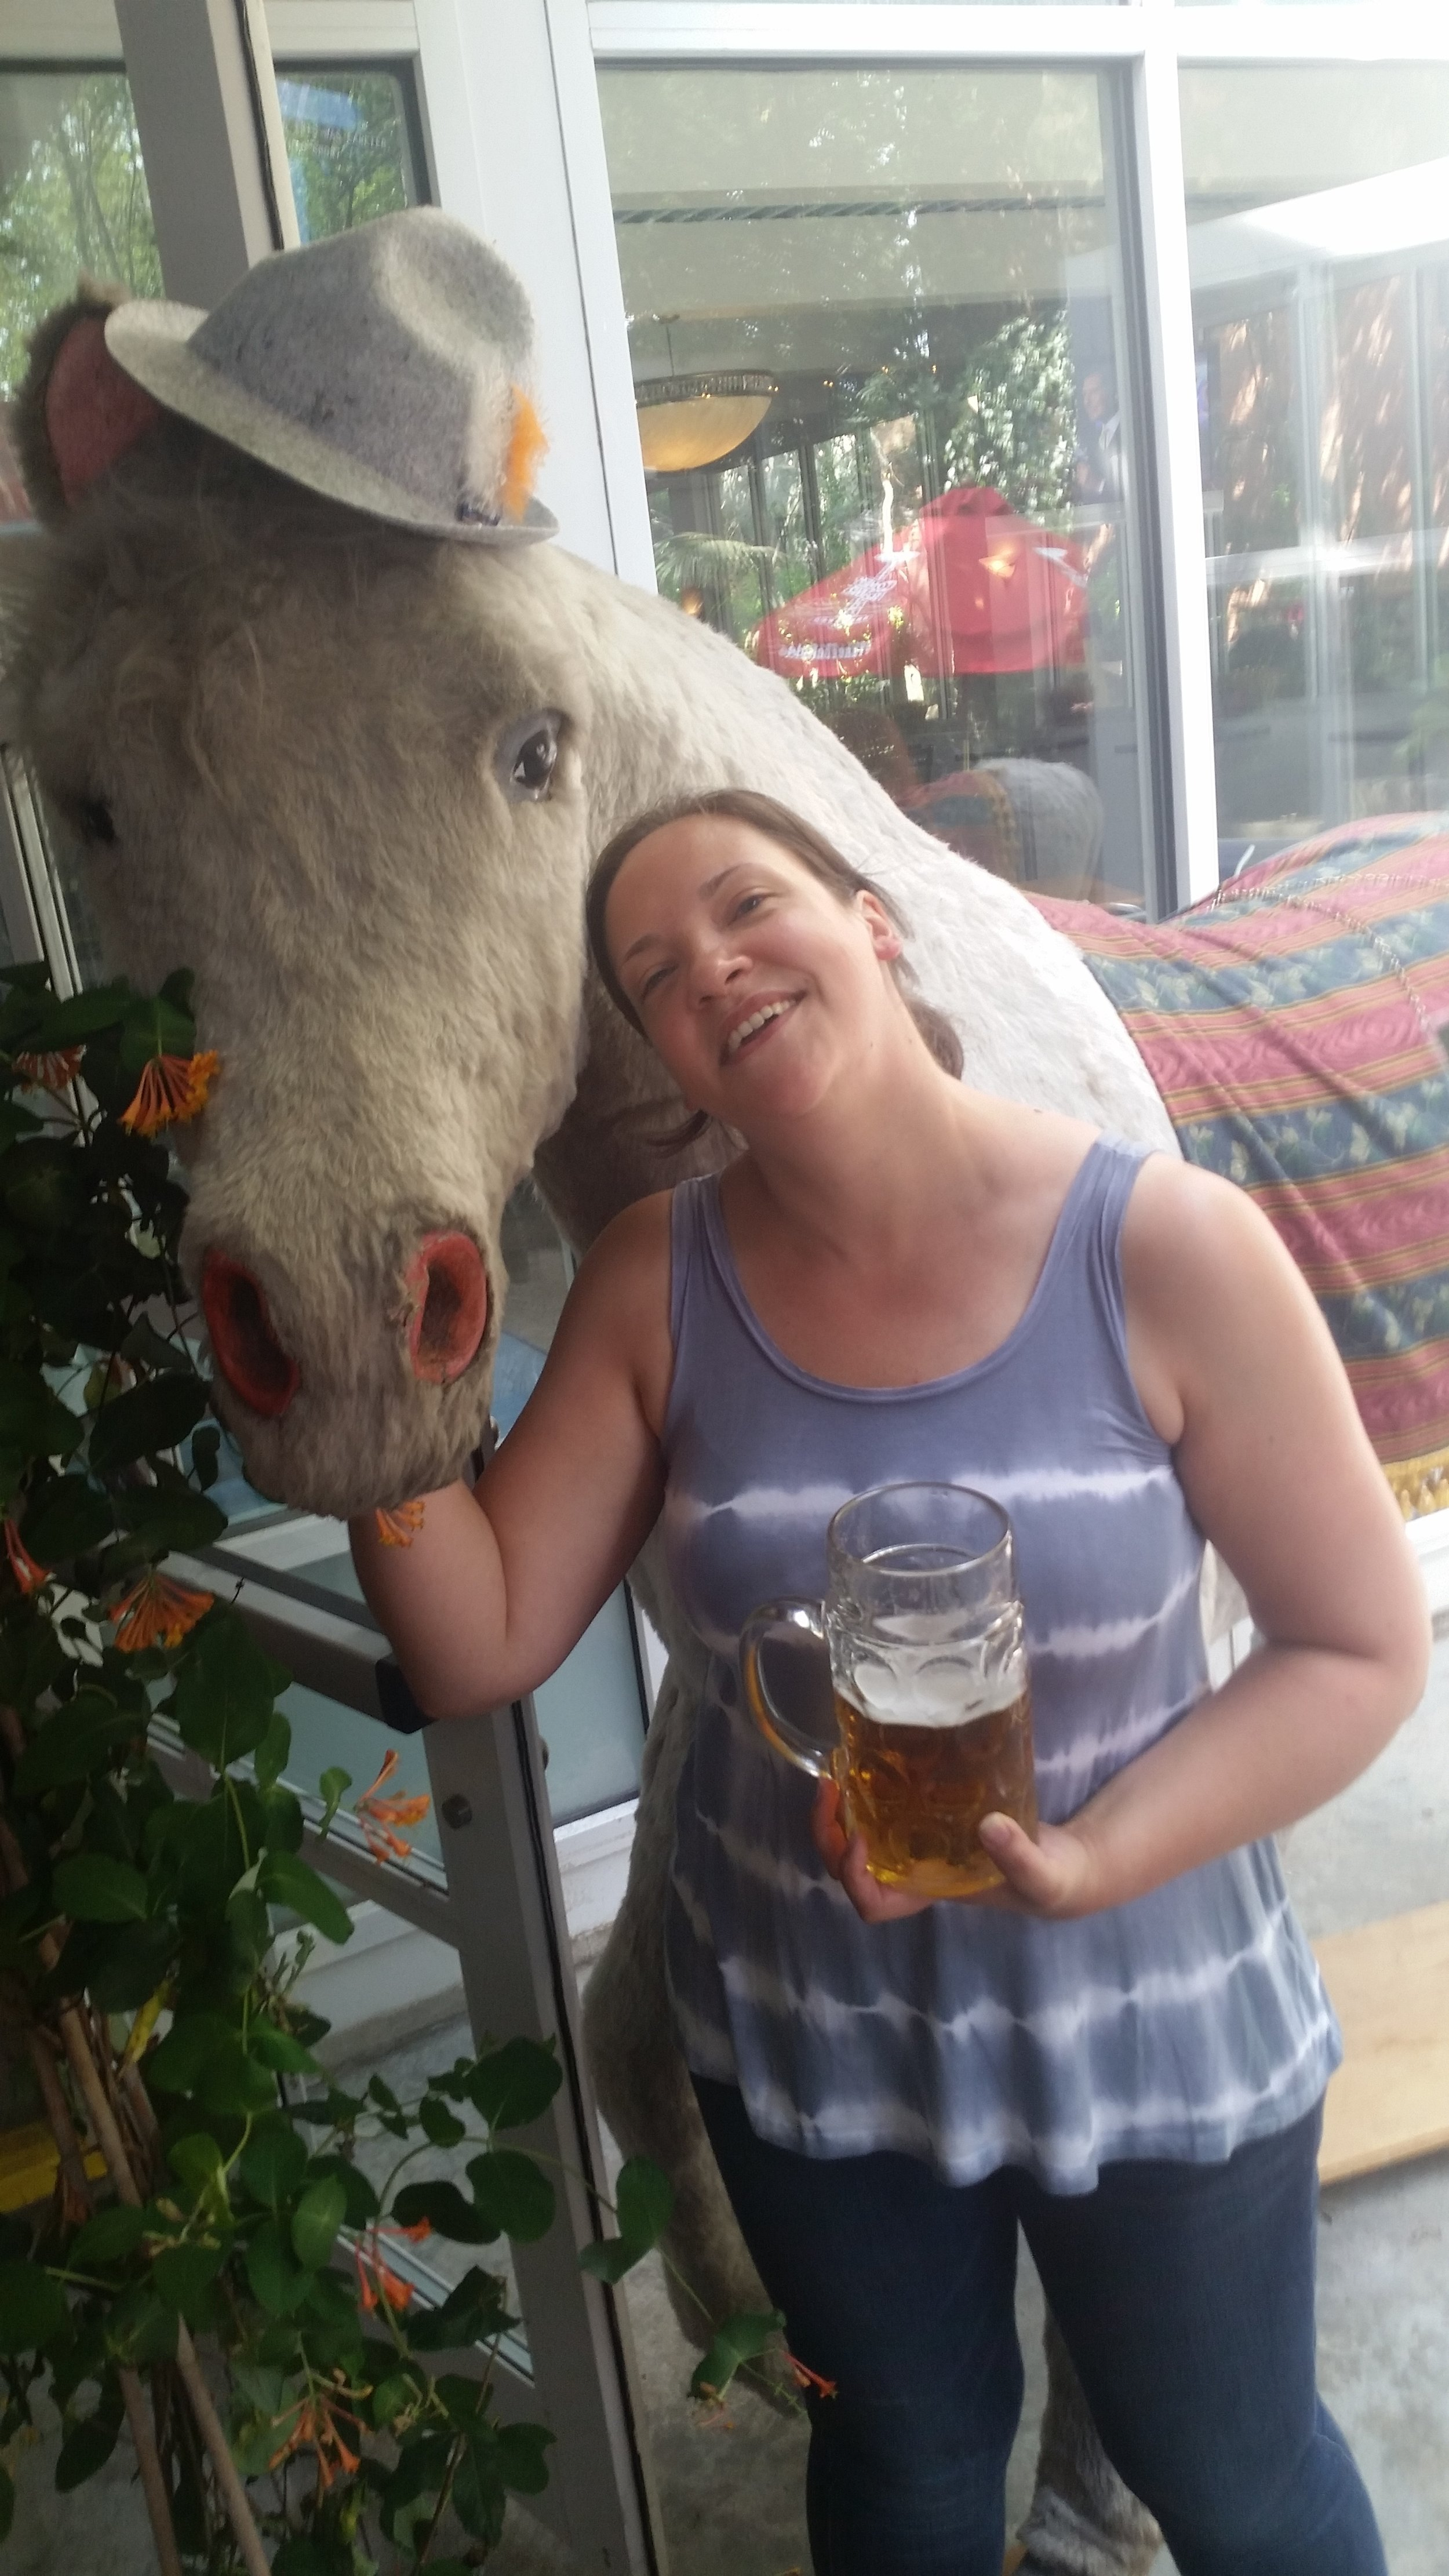 I'd like to thank my best friend, the horse from the Grand Prospect Hall Beer Garden